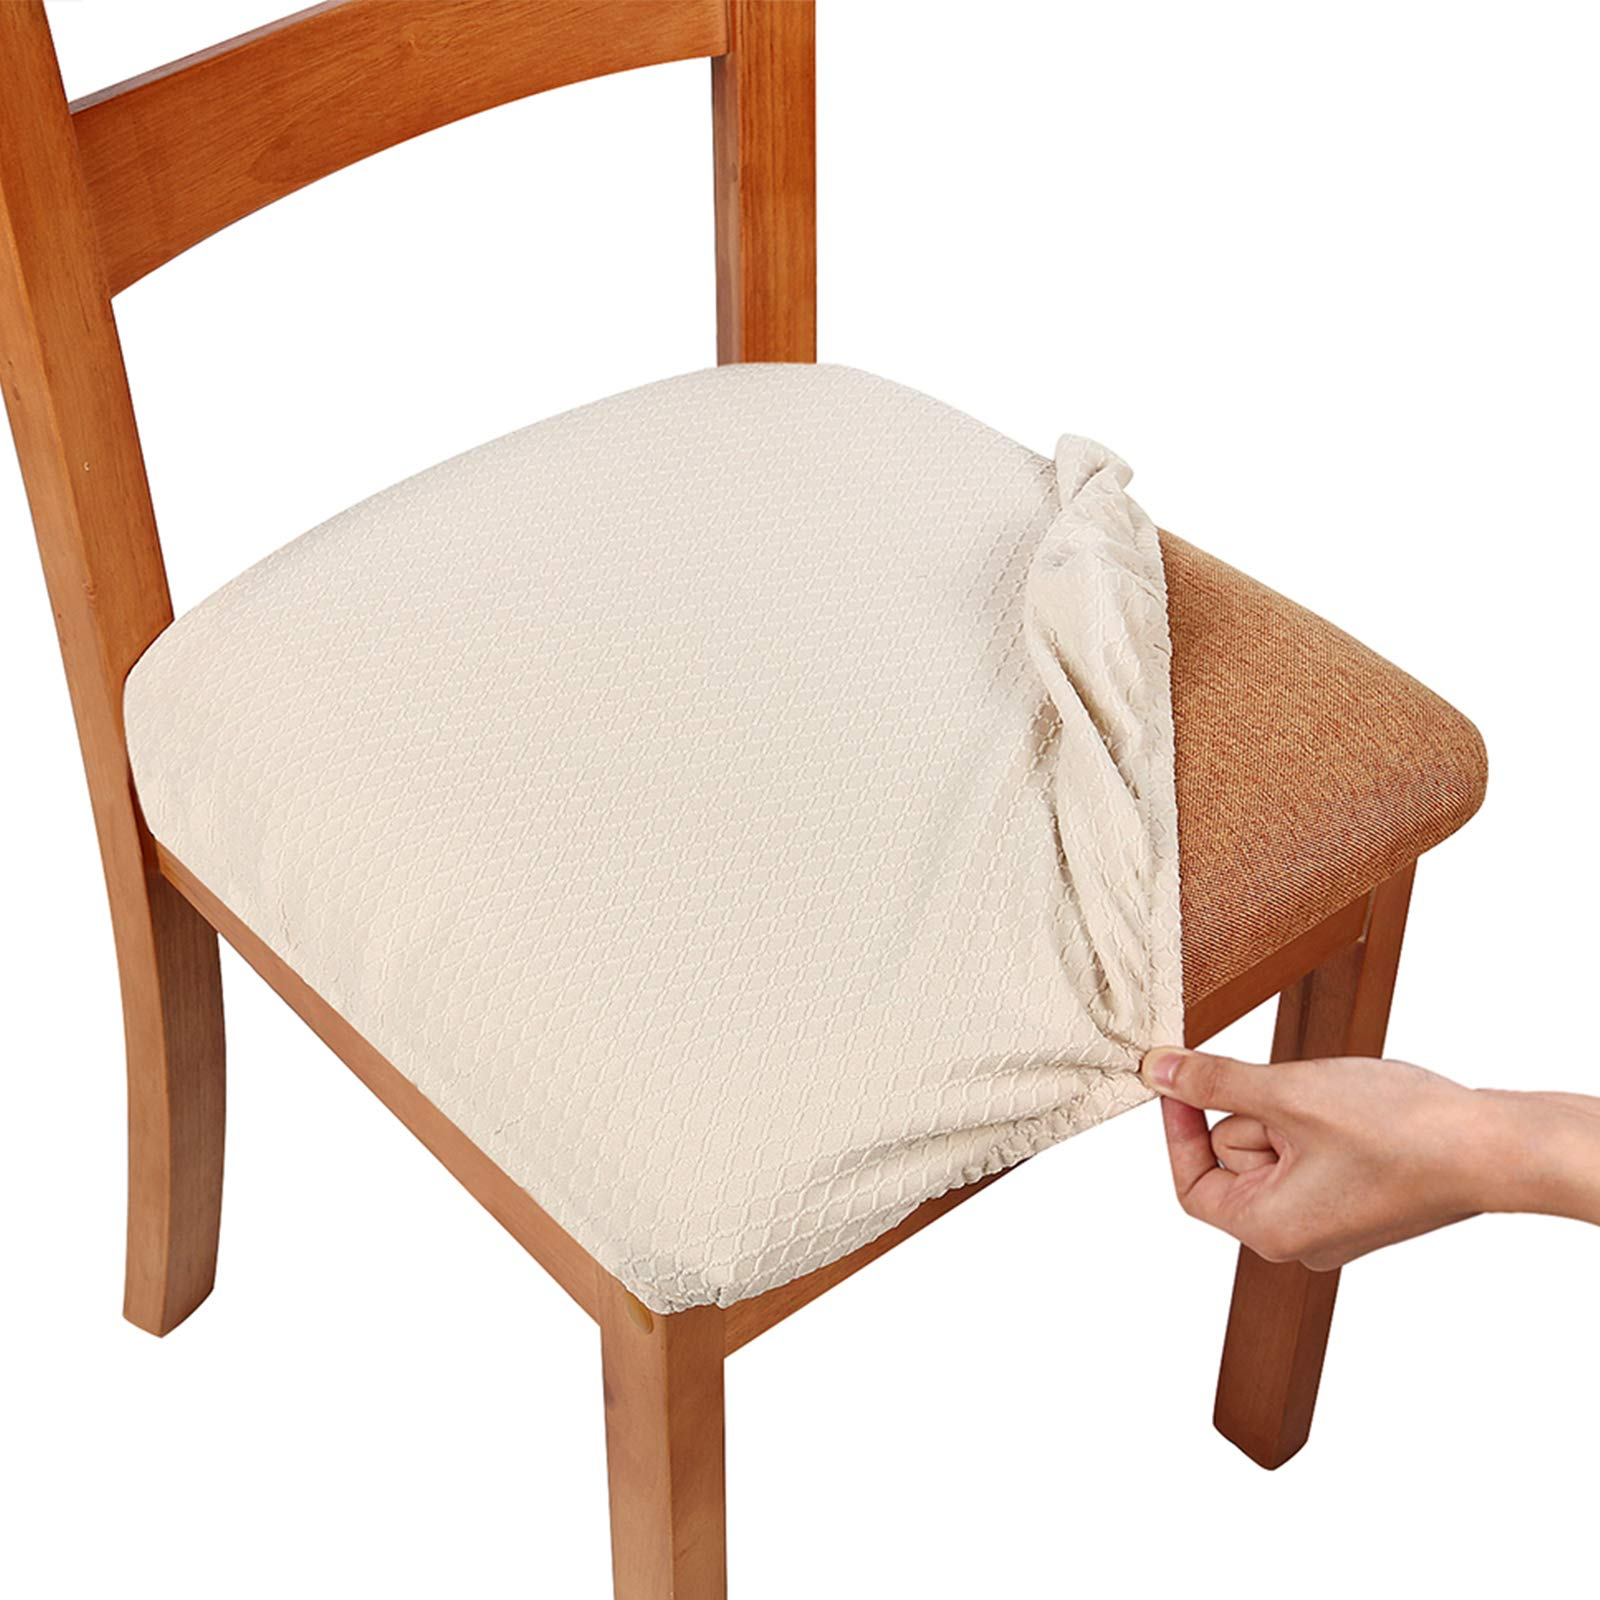 Amazon Com Smiry Seat Covers For Dining Room Chairs Stretch Jacquard Dining Room Chair Seat Covers Set Of 2 Beige Kitchen Dining